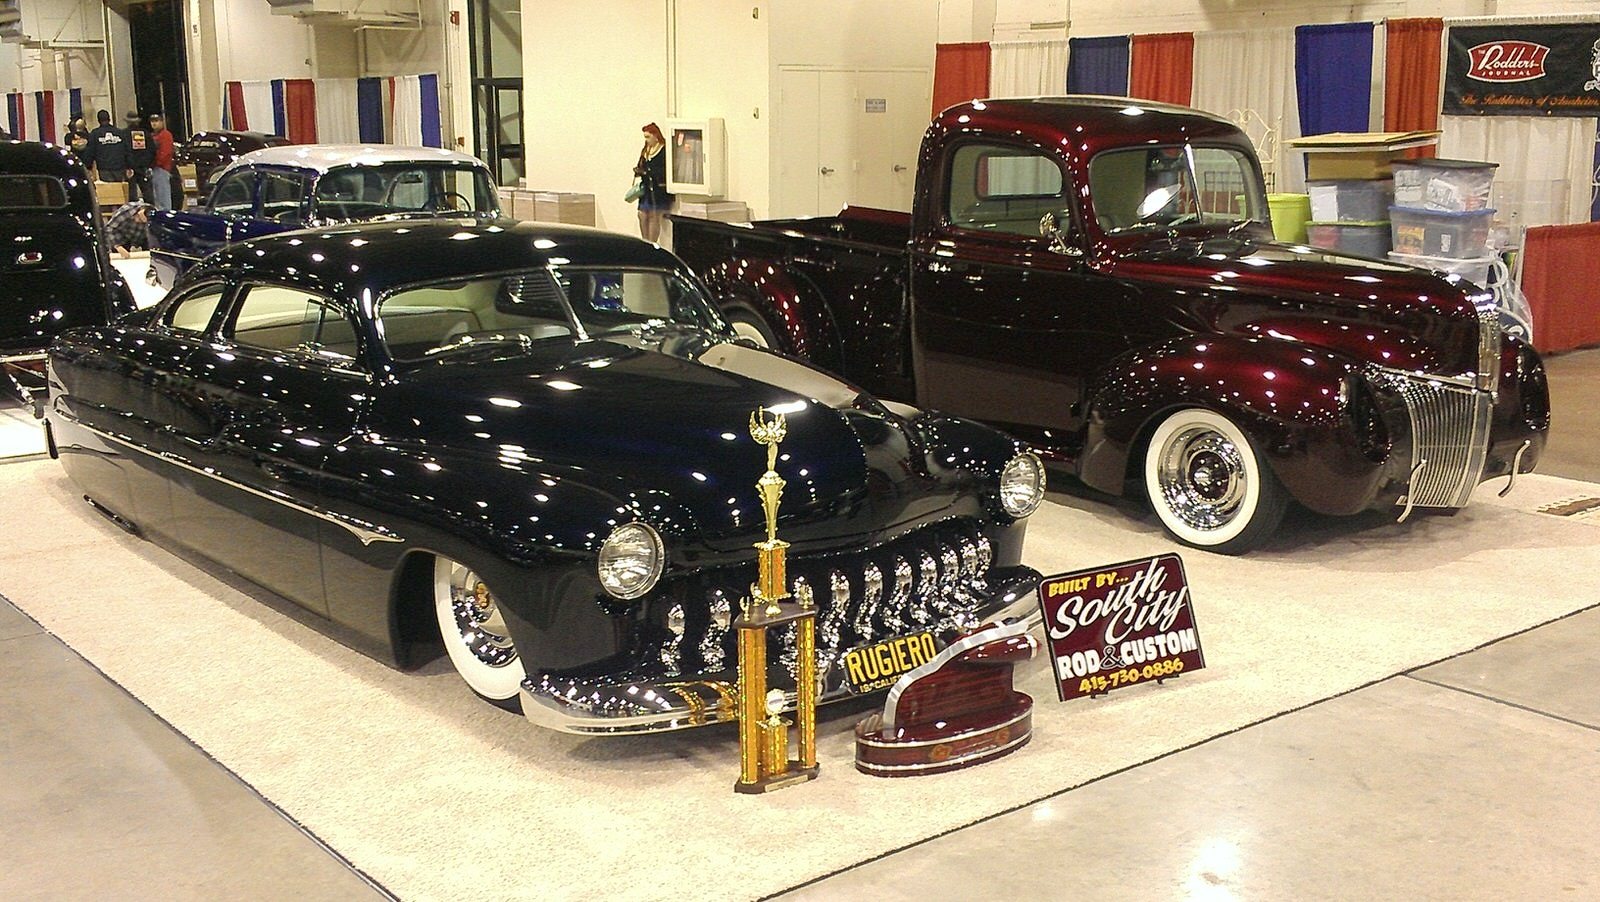 South City Rod & Custom - at the Grand National Roadster Show in Pomona, CA